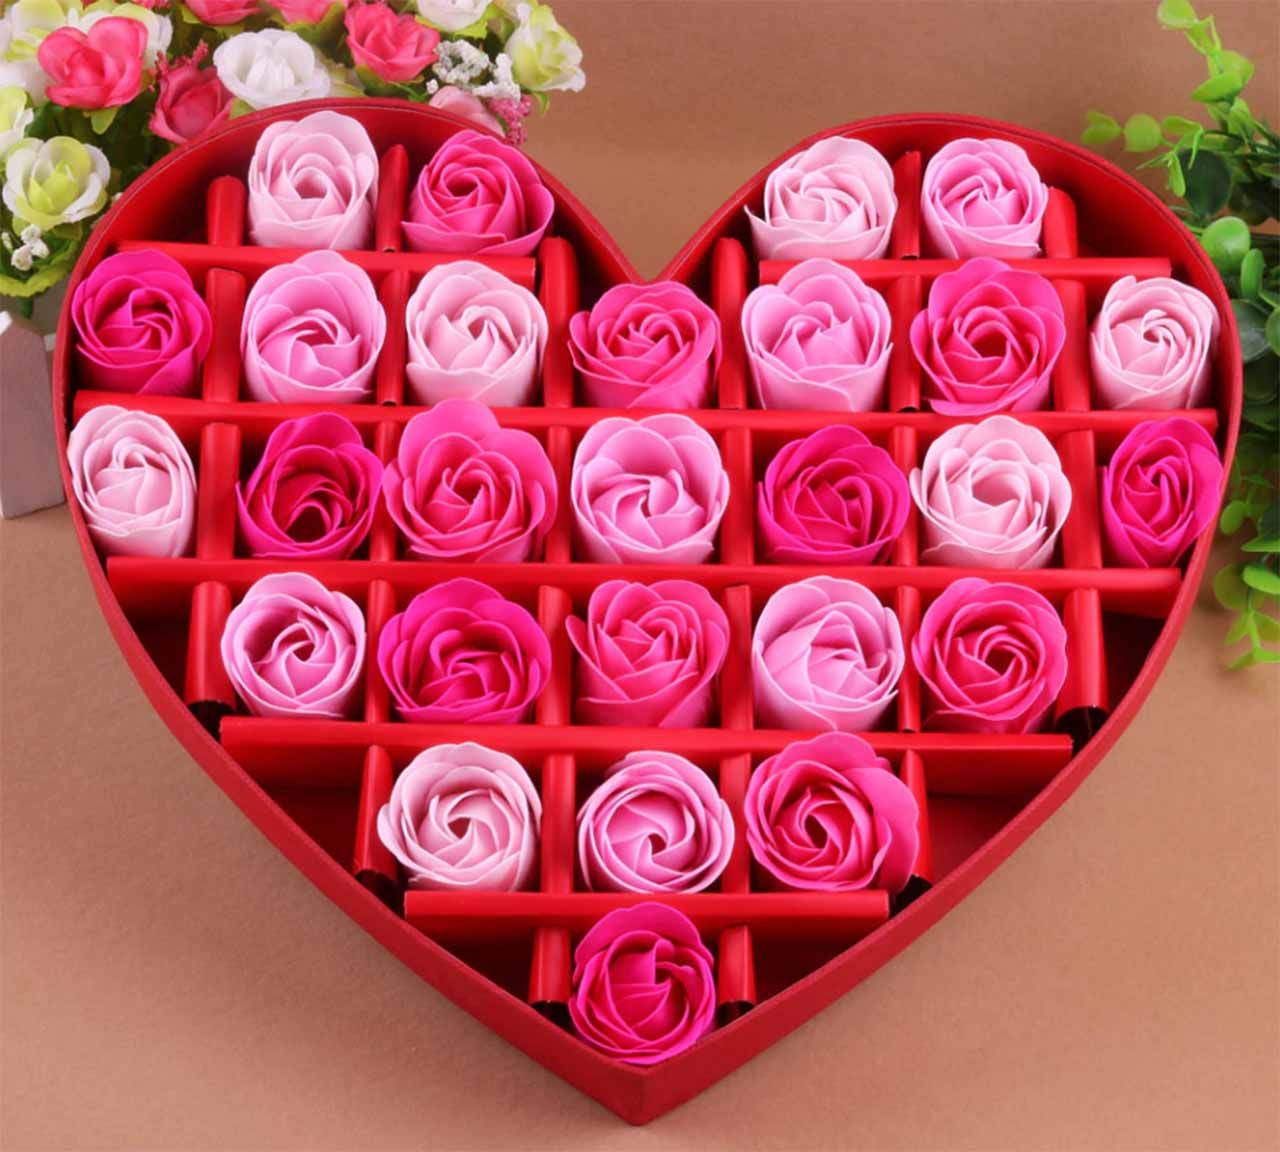 Romantic Birthday Gift Ideas for Girlfriend to